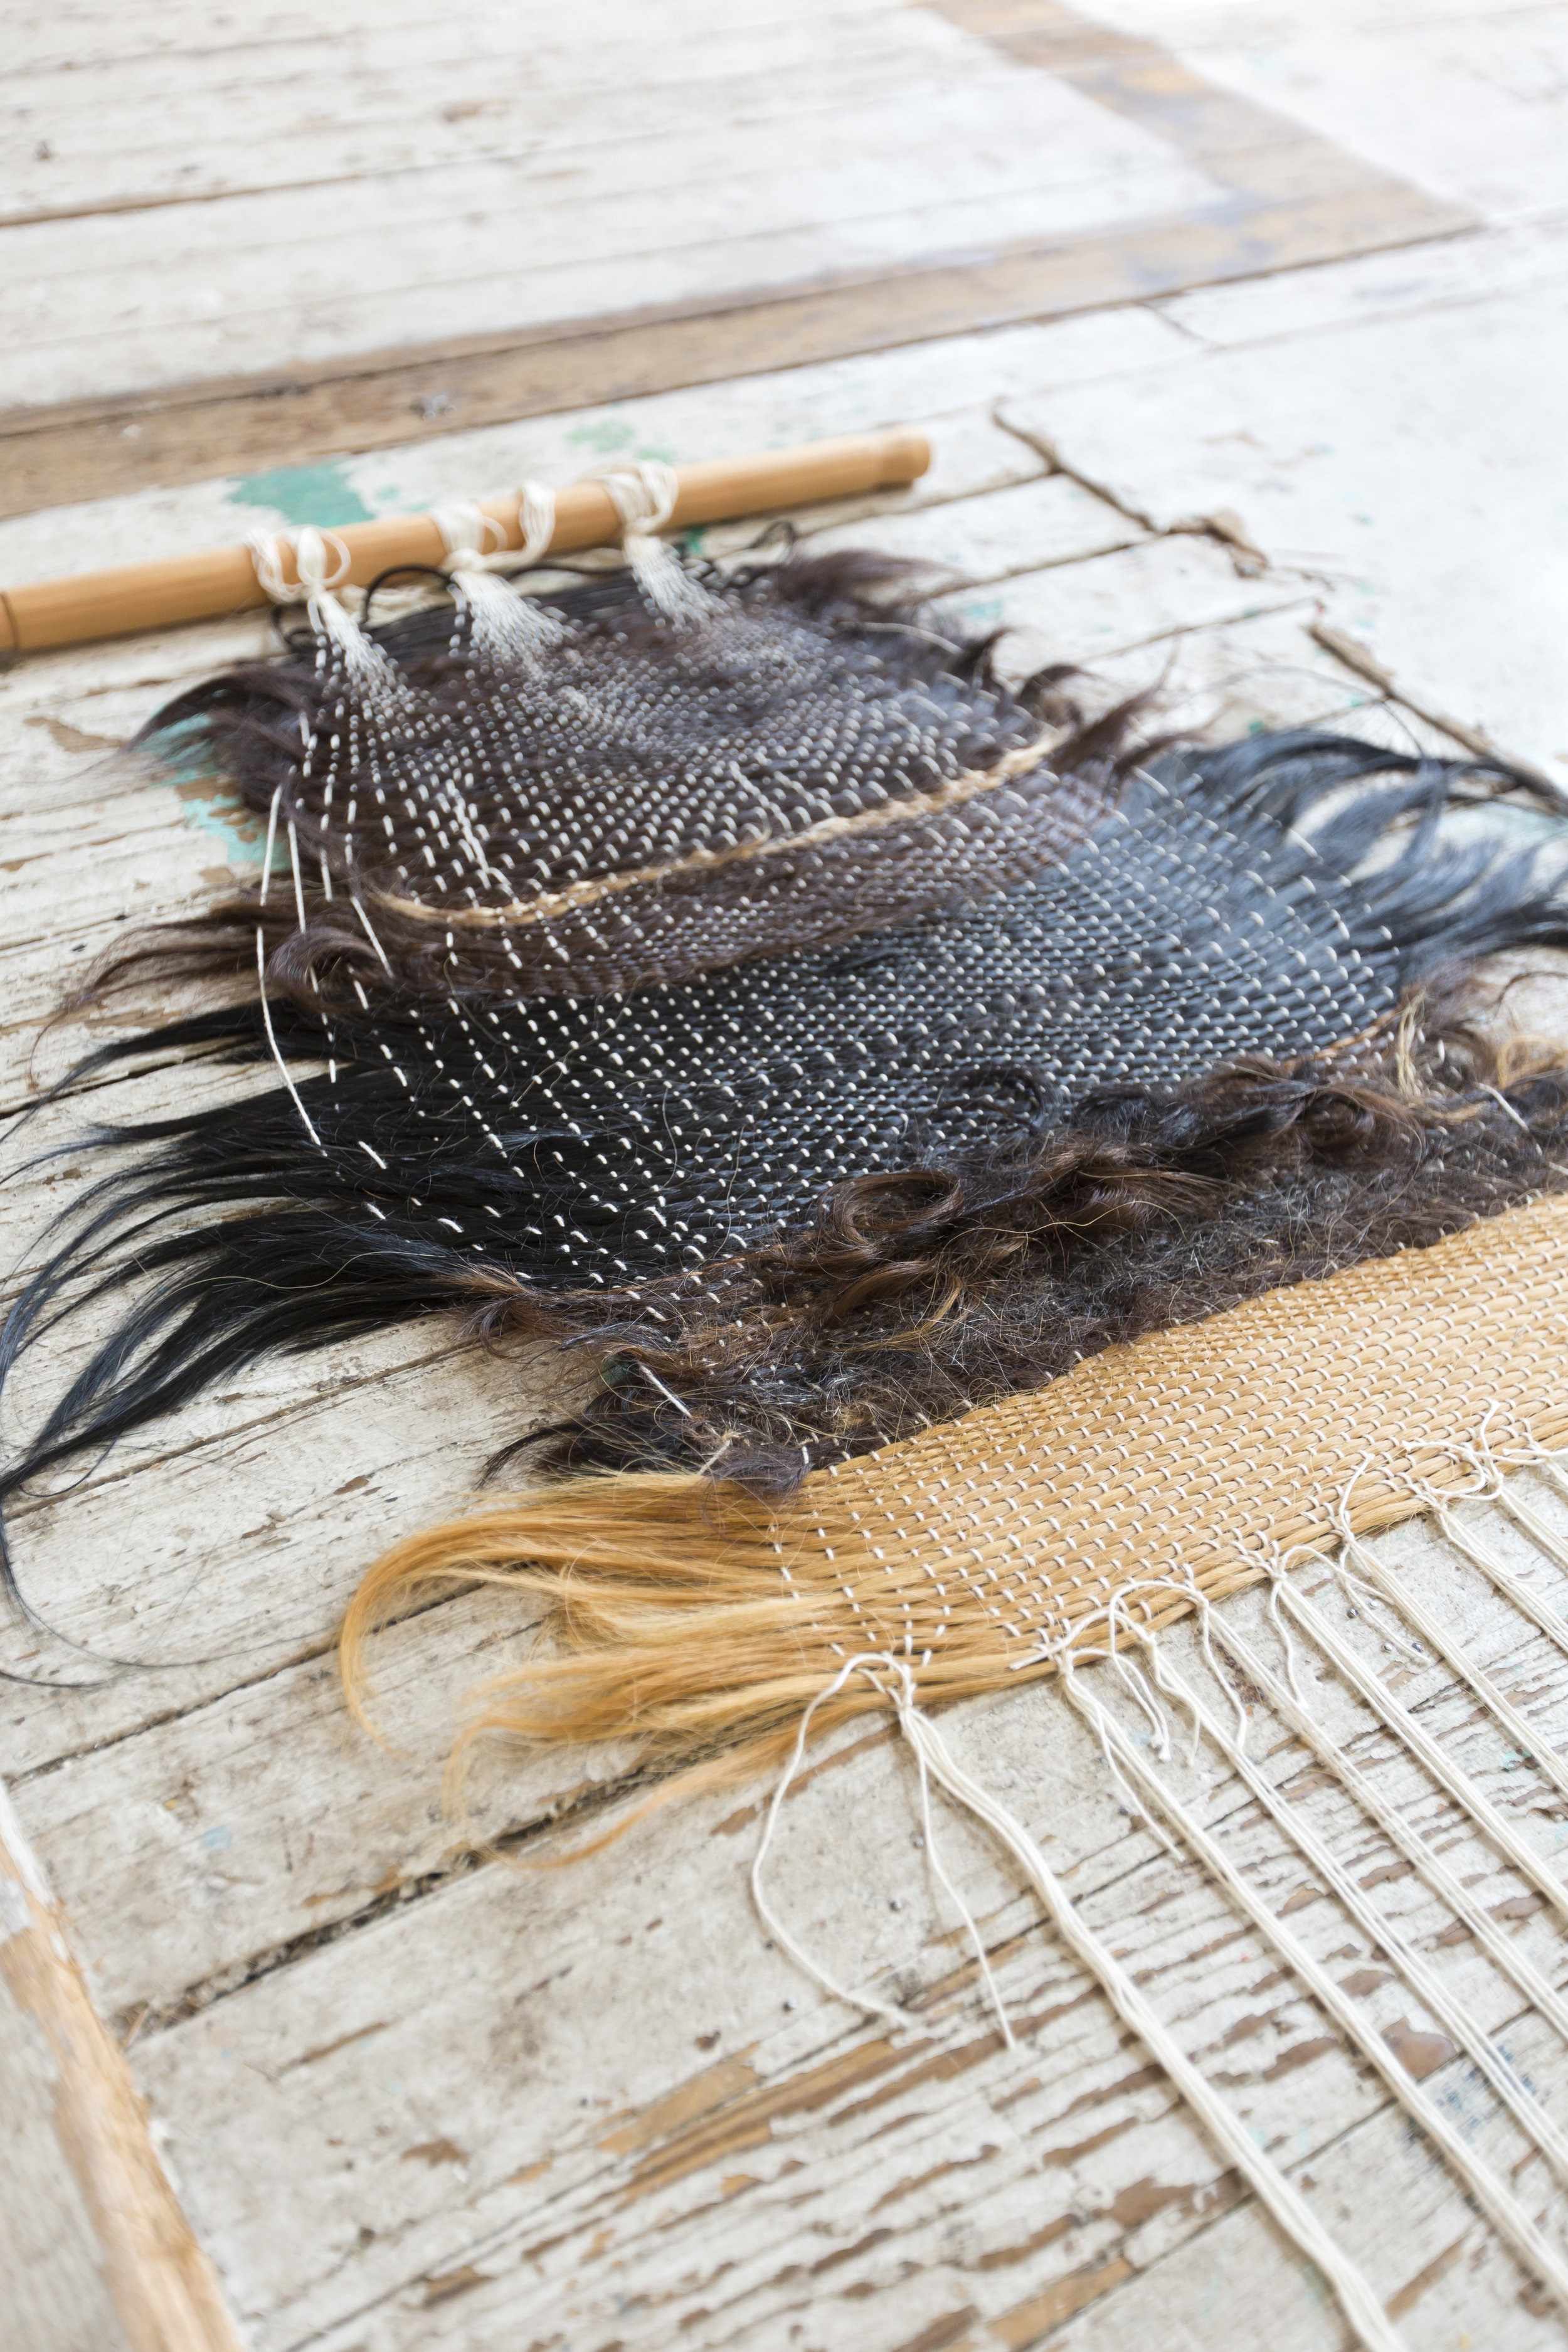 The hair weaving lays flat on the floor with the wooden beam at the top. Hair are woven in horizontally with the white color of the warp threads showing through. Hair color ranges from pitch black to brown to blonde. Most of the hair is straight with an one-inch stripe of curly and hand-spun short hair.